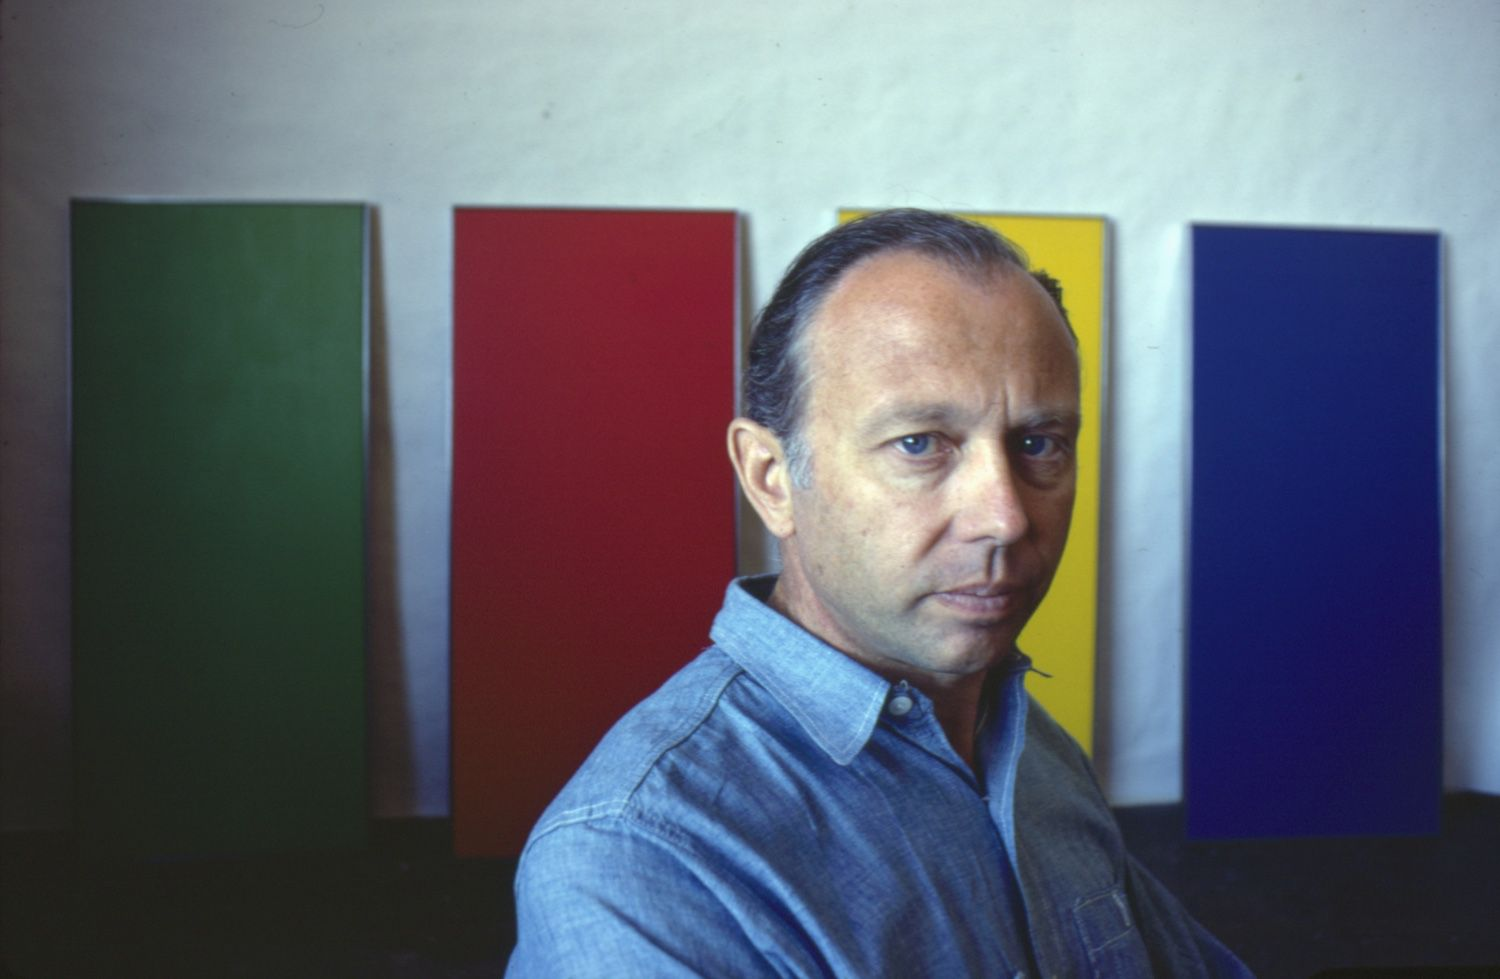 Biography of Ellsworth Kelly, Minimalist Artist